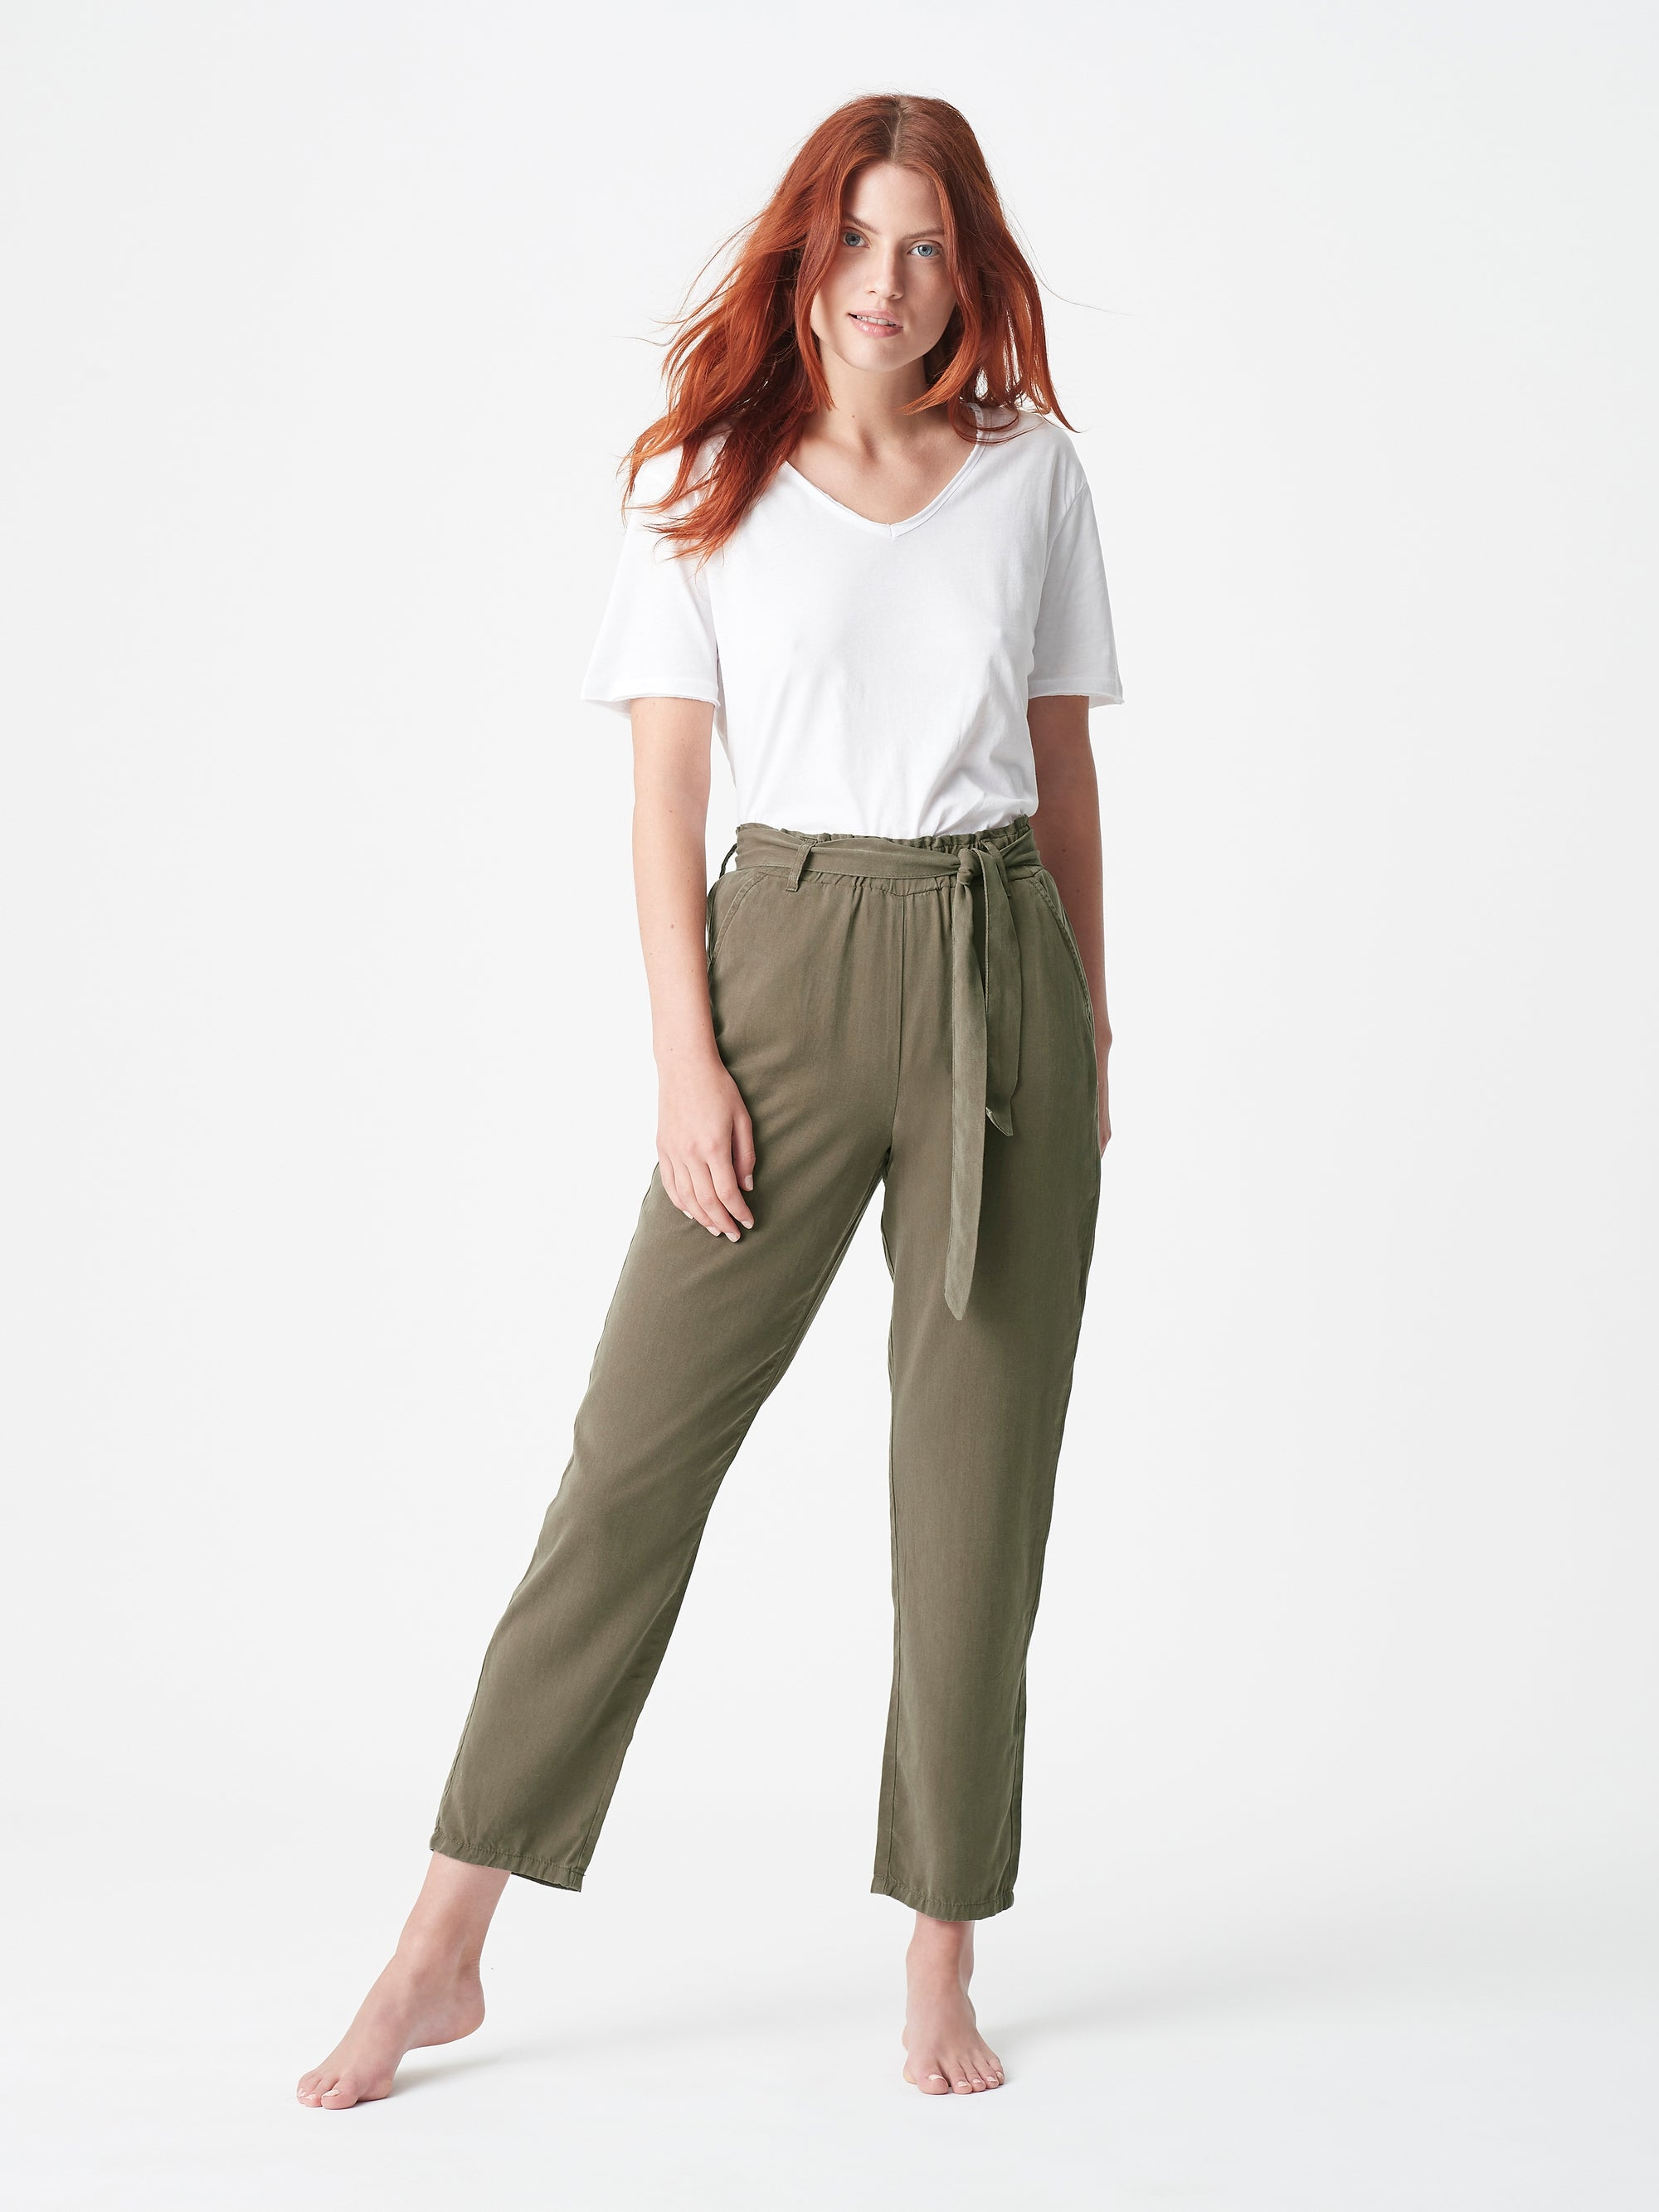 Womens High Rise Pants in Olive